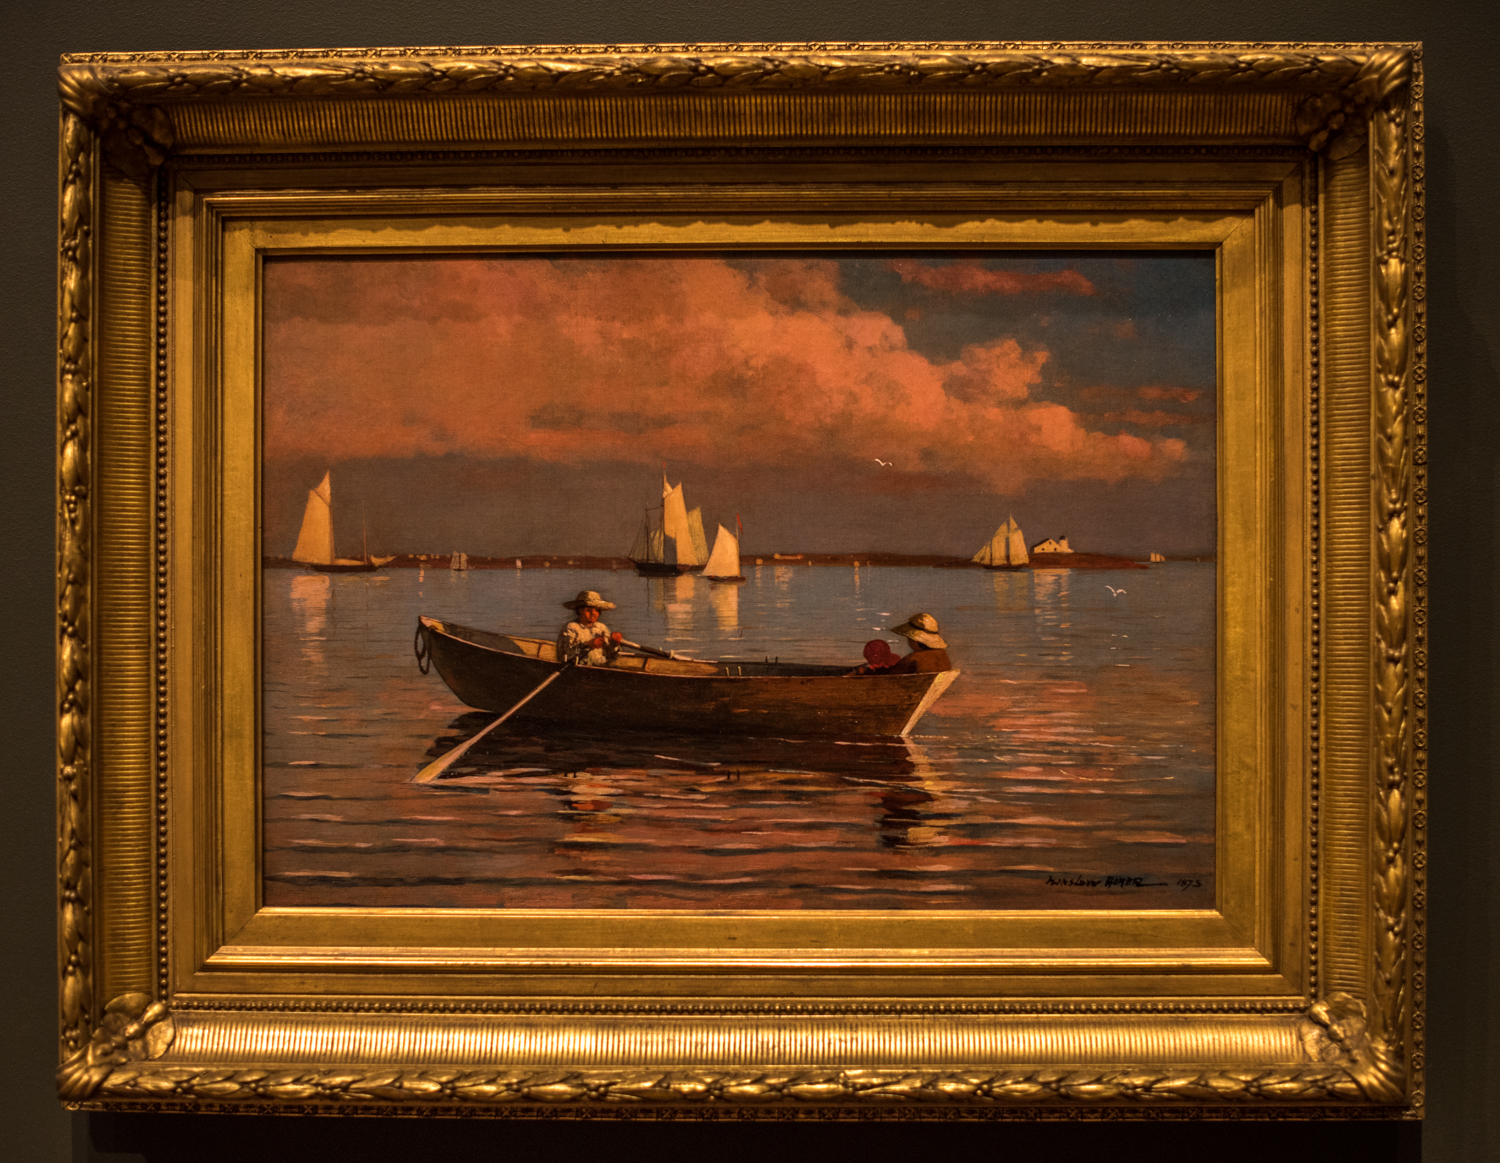 """Gloucester Harbor, 1873,by Winslow Homer (1836-1910), oil on canvas. """"Winslow Homer is best known for his dark, brooding seascapes of the 1890s. In the 1870s, however, he was distinguished for scenes of children at play that were considered decidedly lacking in sentimentality. This view of three children in a dory in Gloucester Harbor, Massachusetts, not only depicts a delightful summer outing, but also suggests, by the presence of the huge schooners in the background, the boys' possible future livelihood."""""""